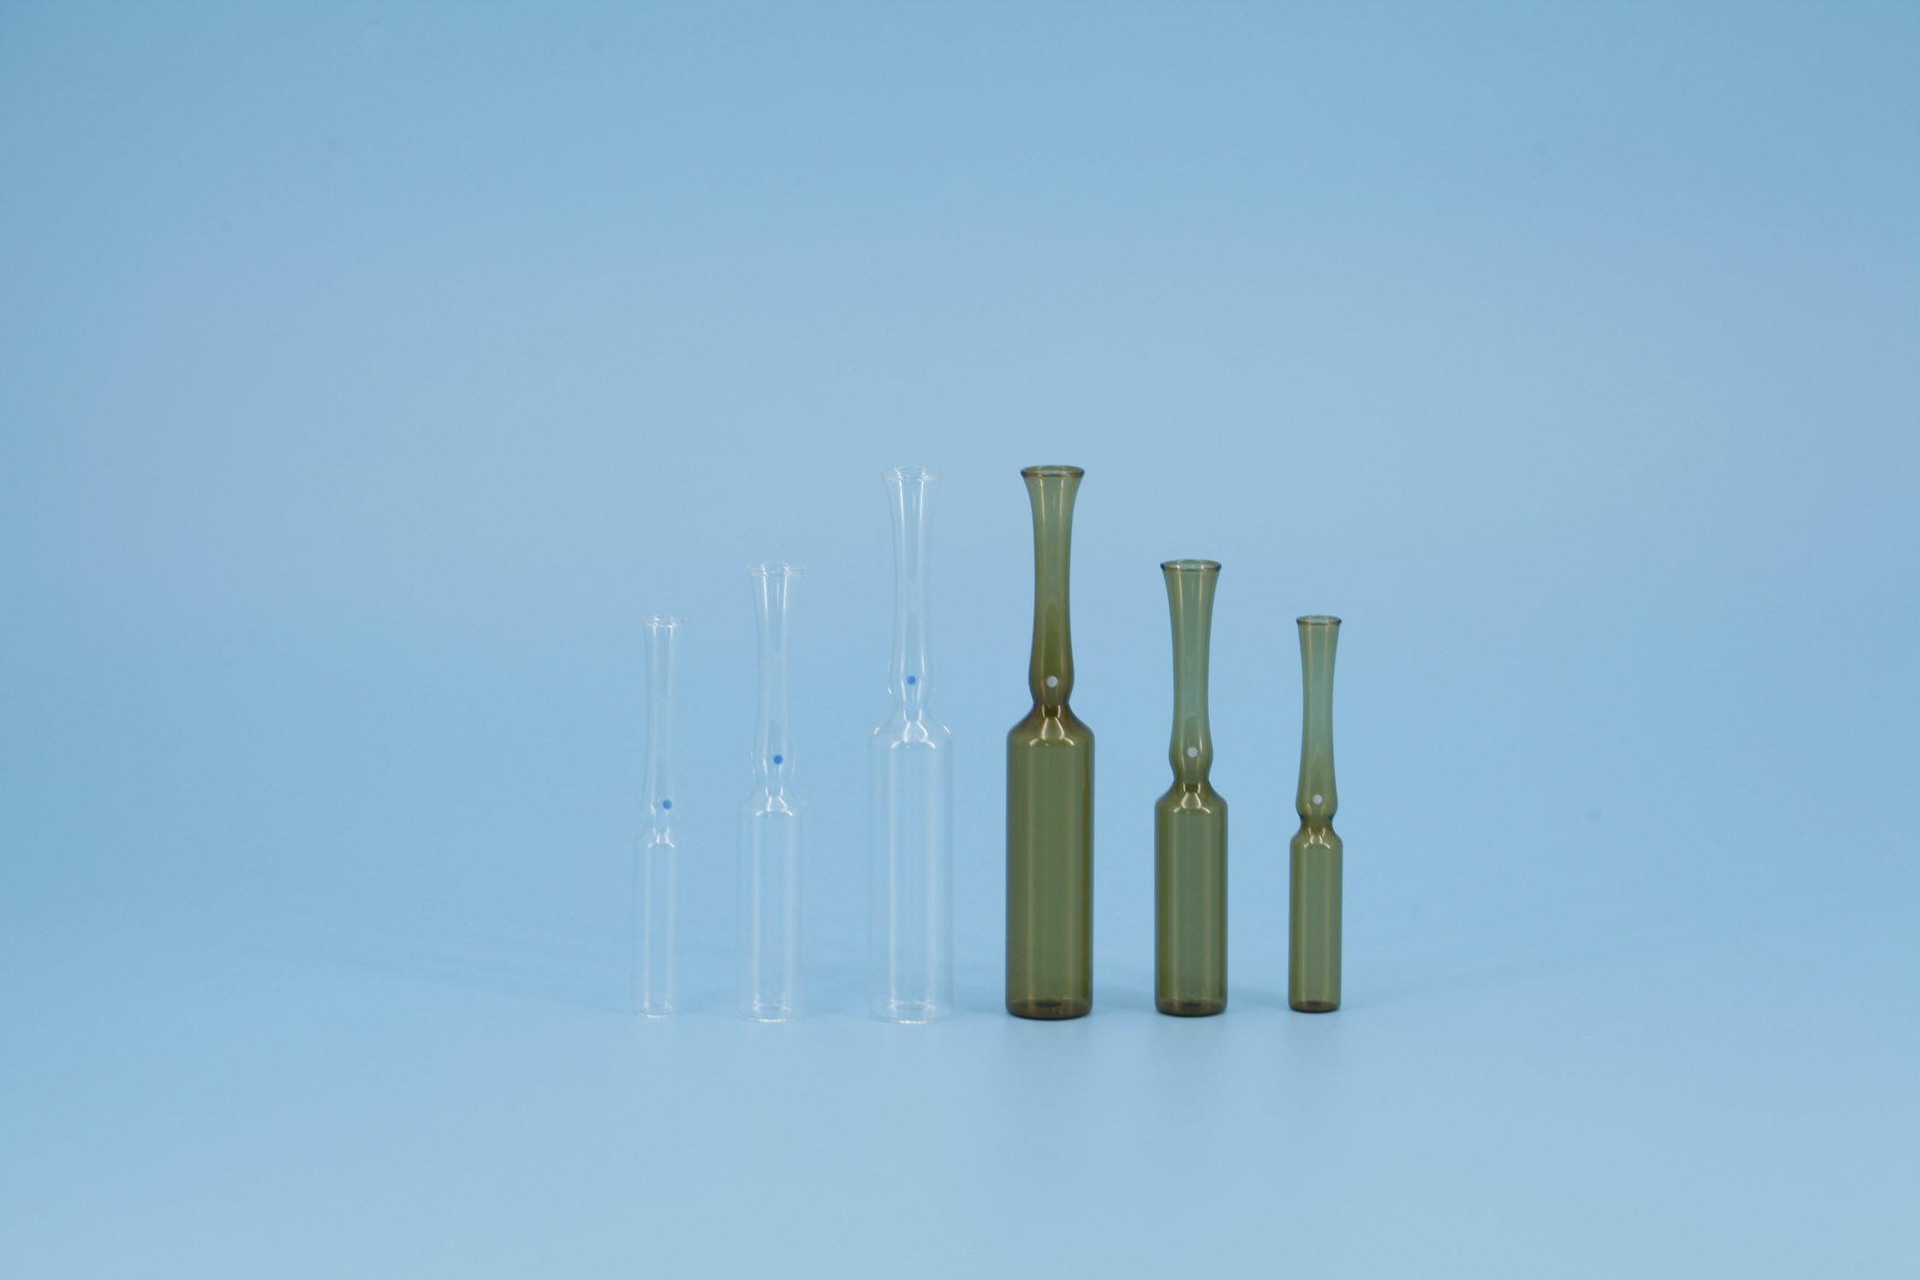 Core siliconvalley ampoule A5703 medicine with a neutral borosilicate curved neck frangible ampoule bottle, 2 ml-10 Ml